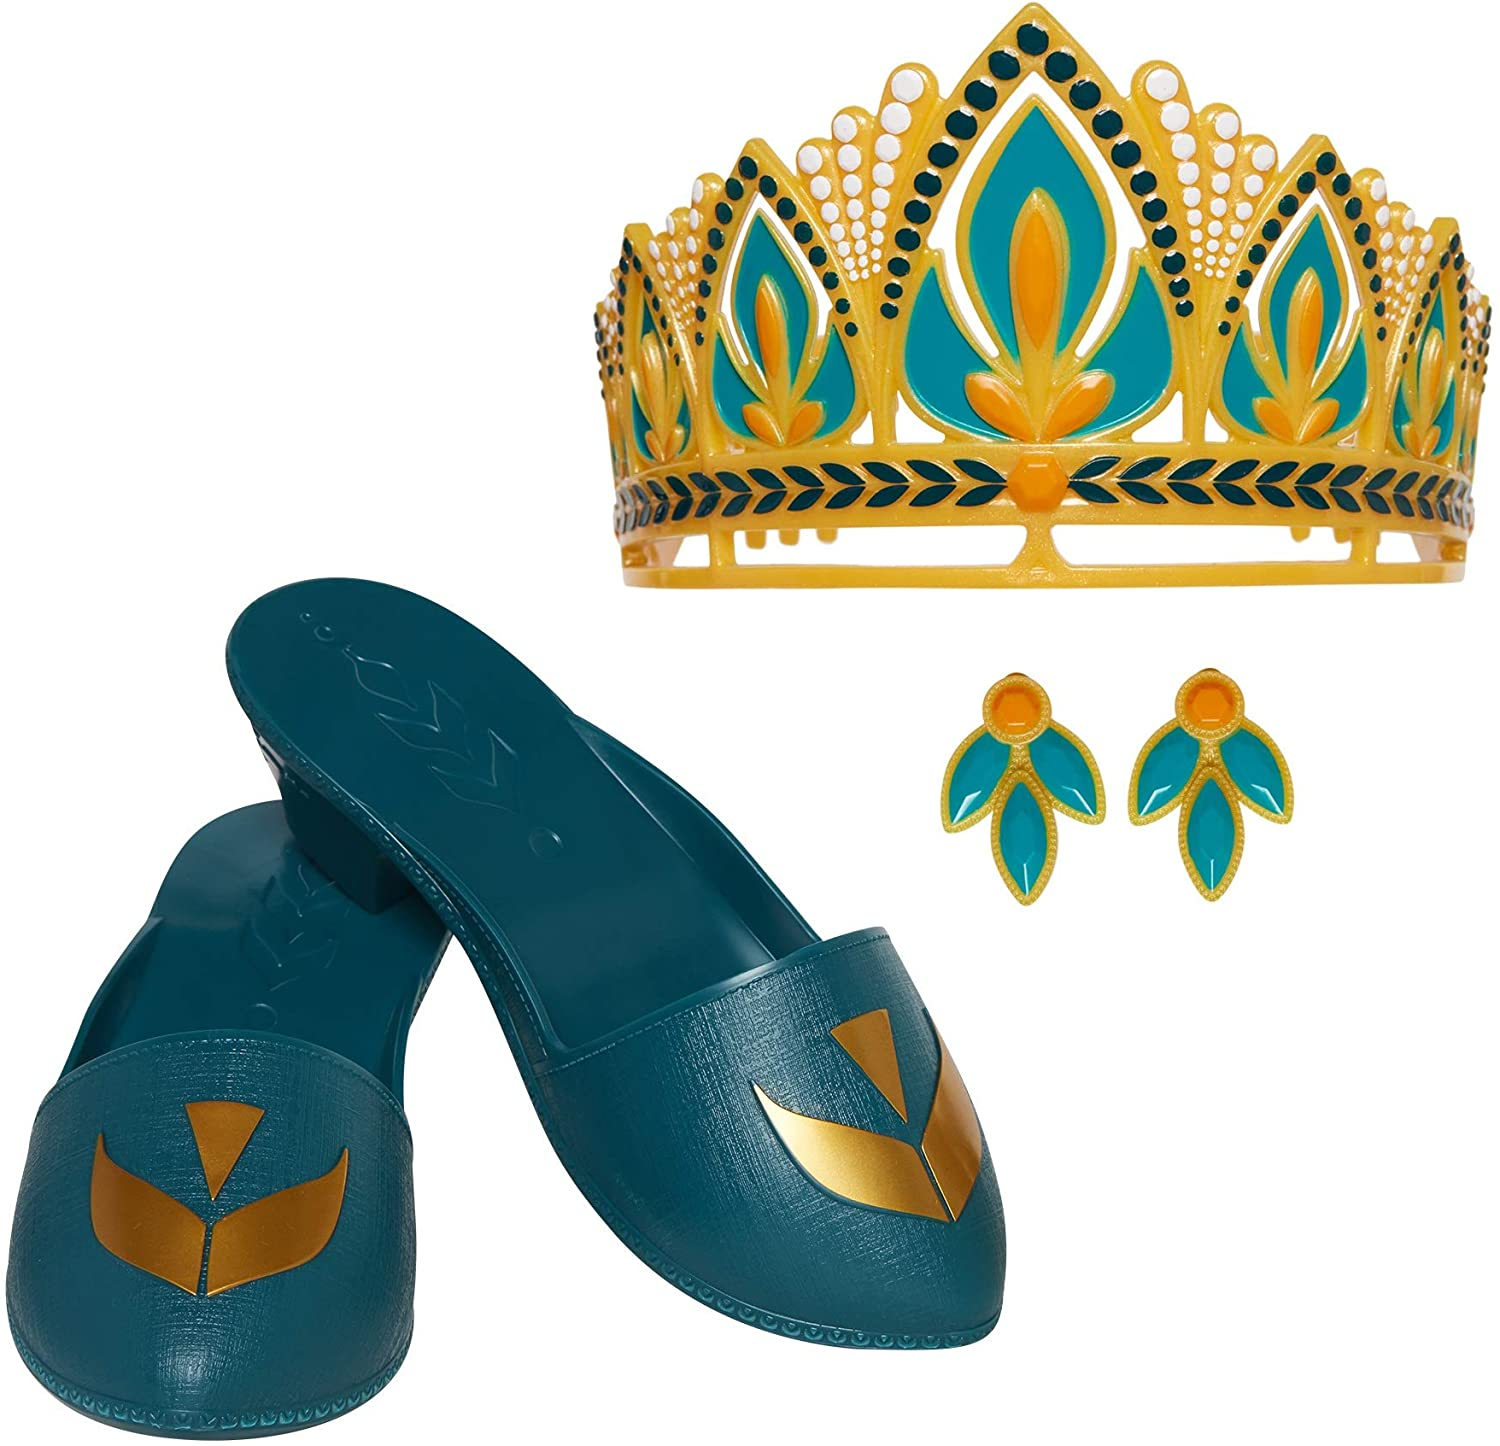 Disney Frozen 2 Queen Anna Accessory Set